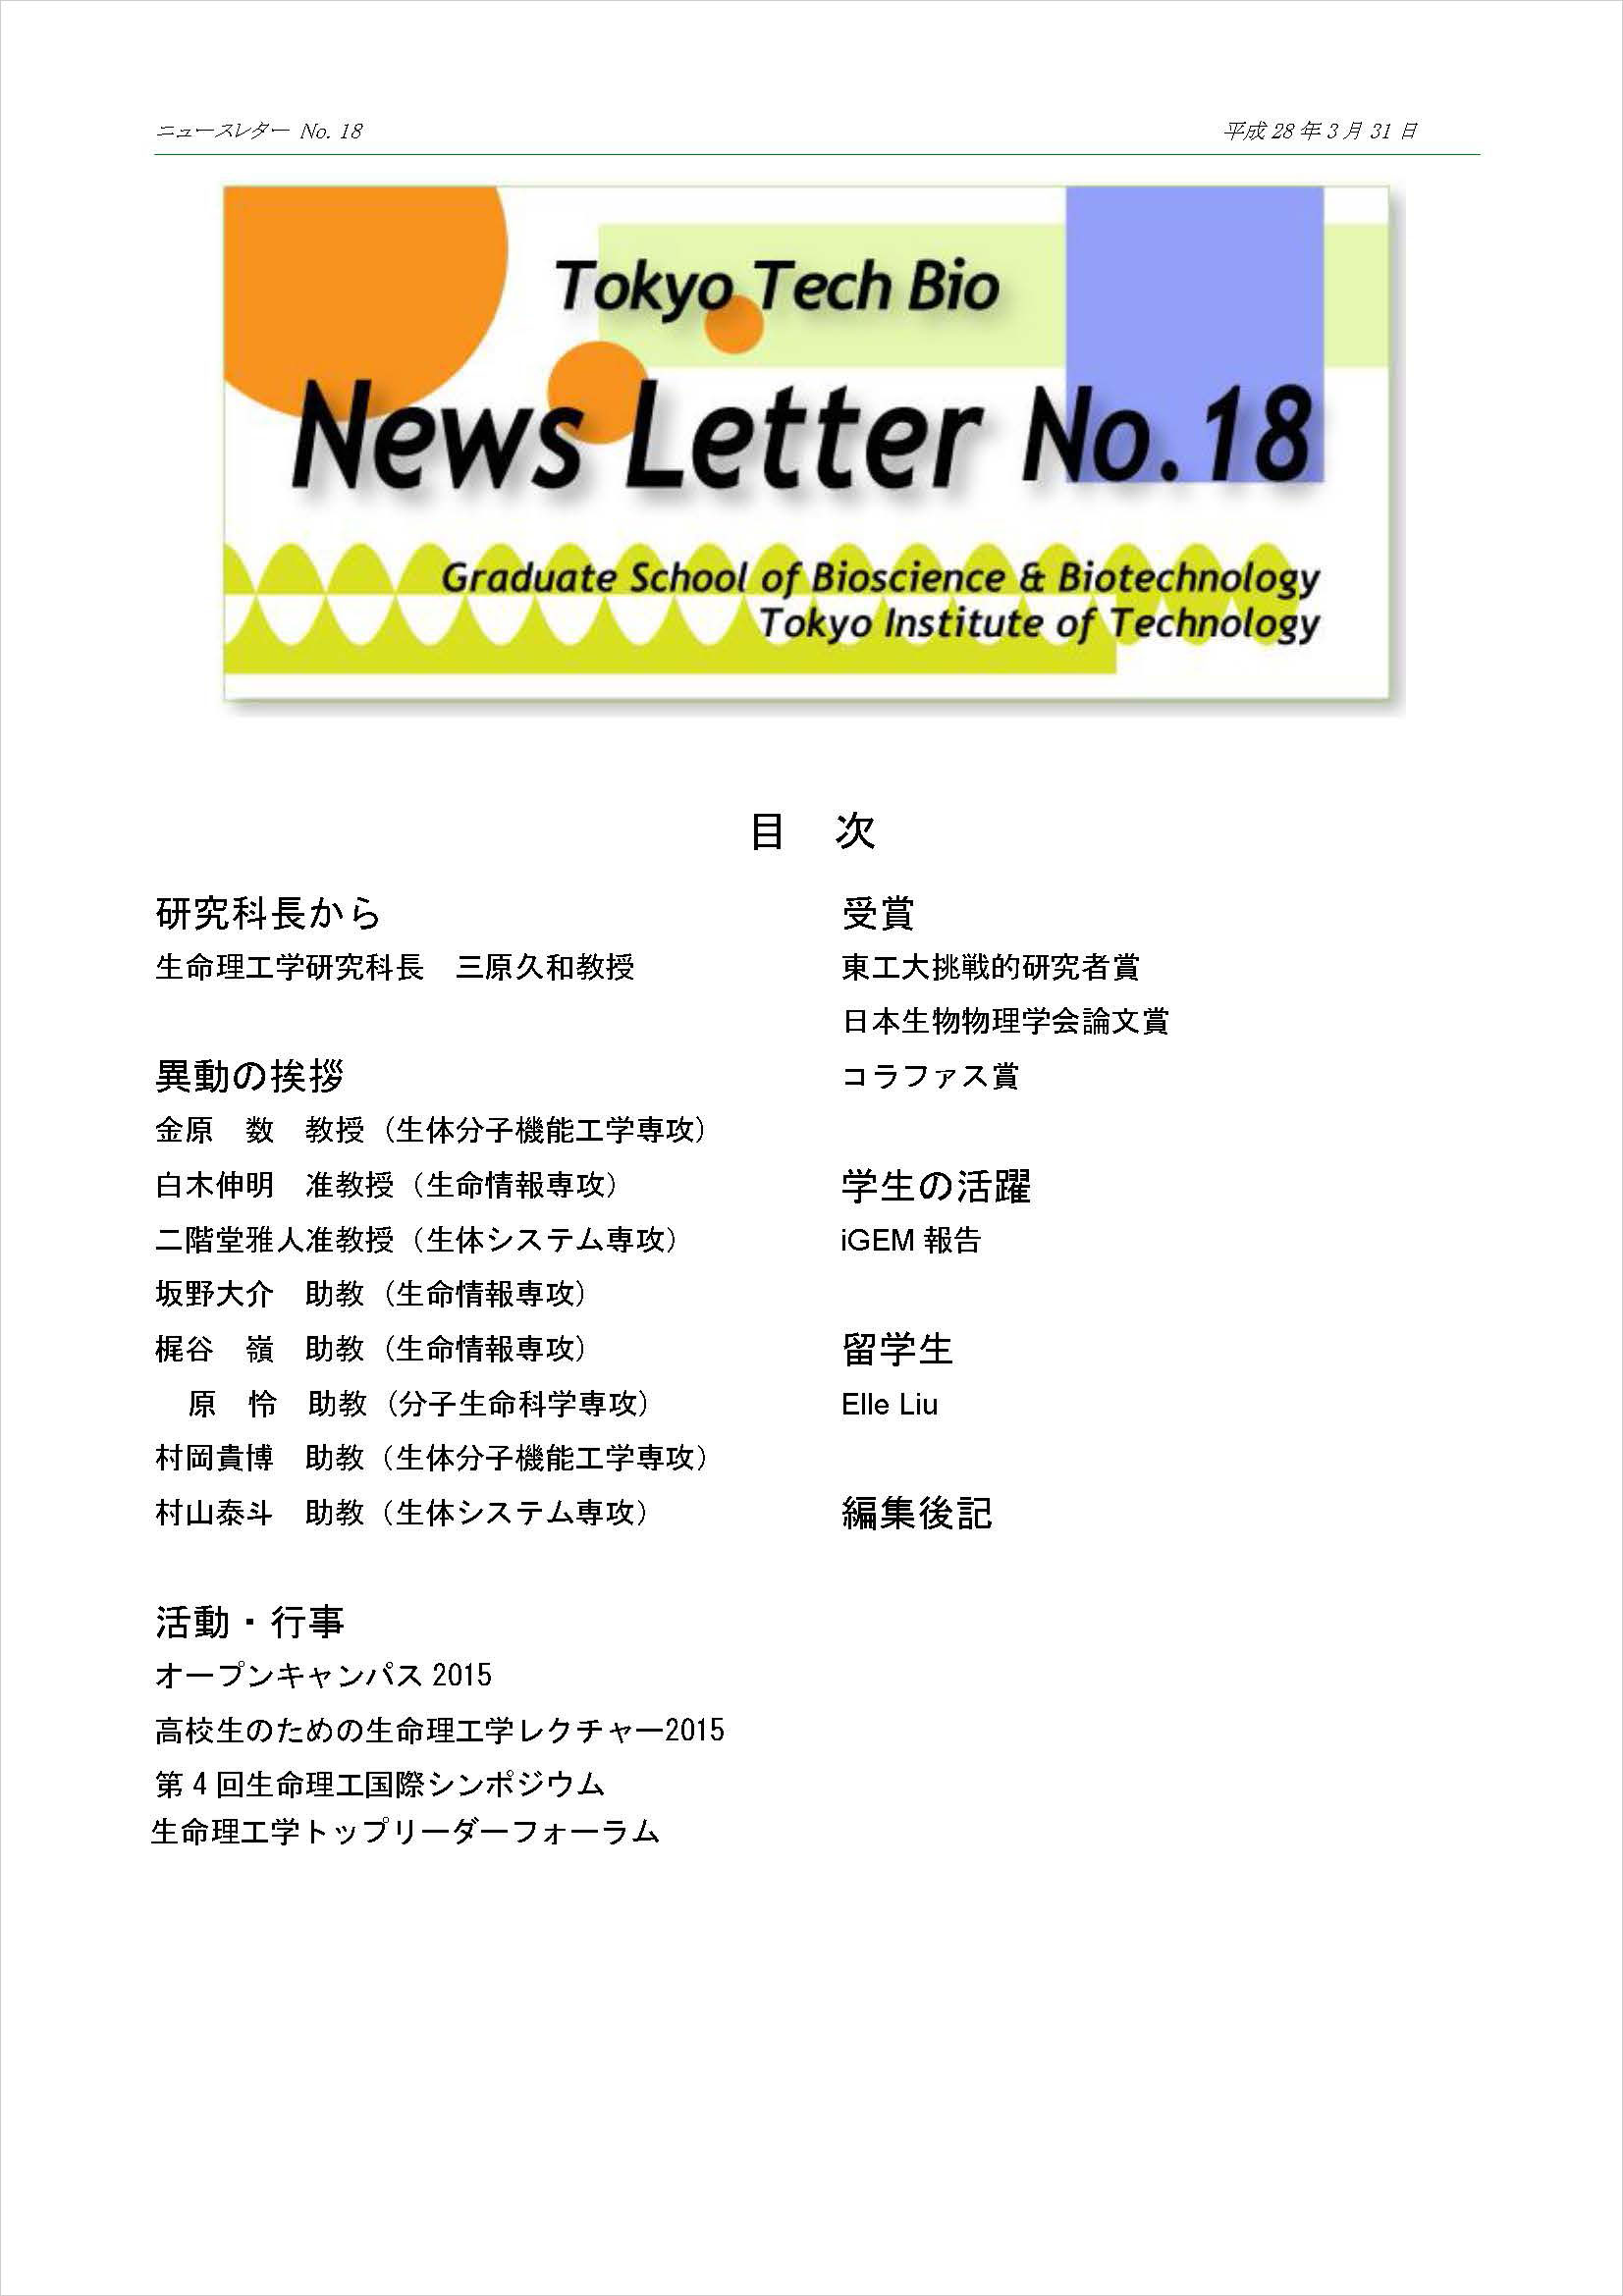 News Letter No.18